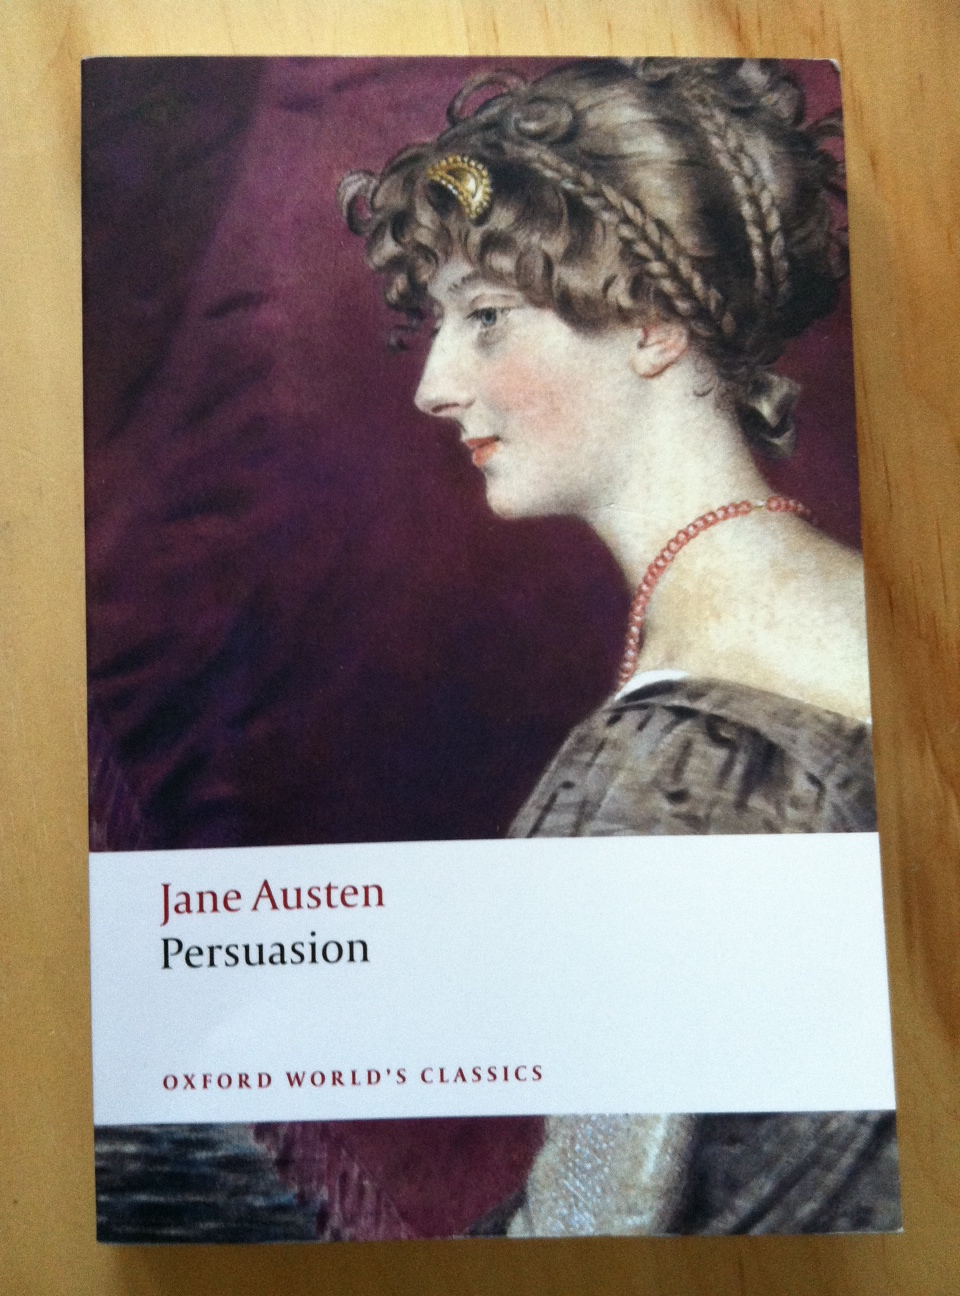 jane austen essay Essay title: emma by jane austen about the author jane austen was born on december 16, 1775 at steventon, england she was the seventh child of the rector of the parish at steventon, and.